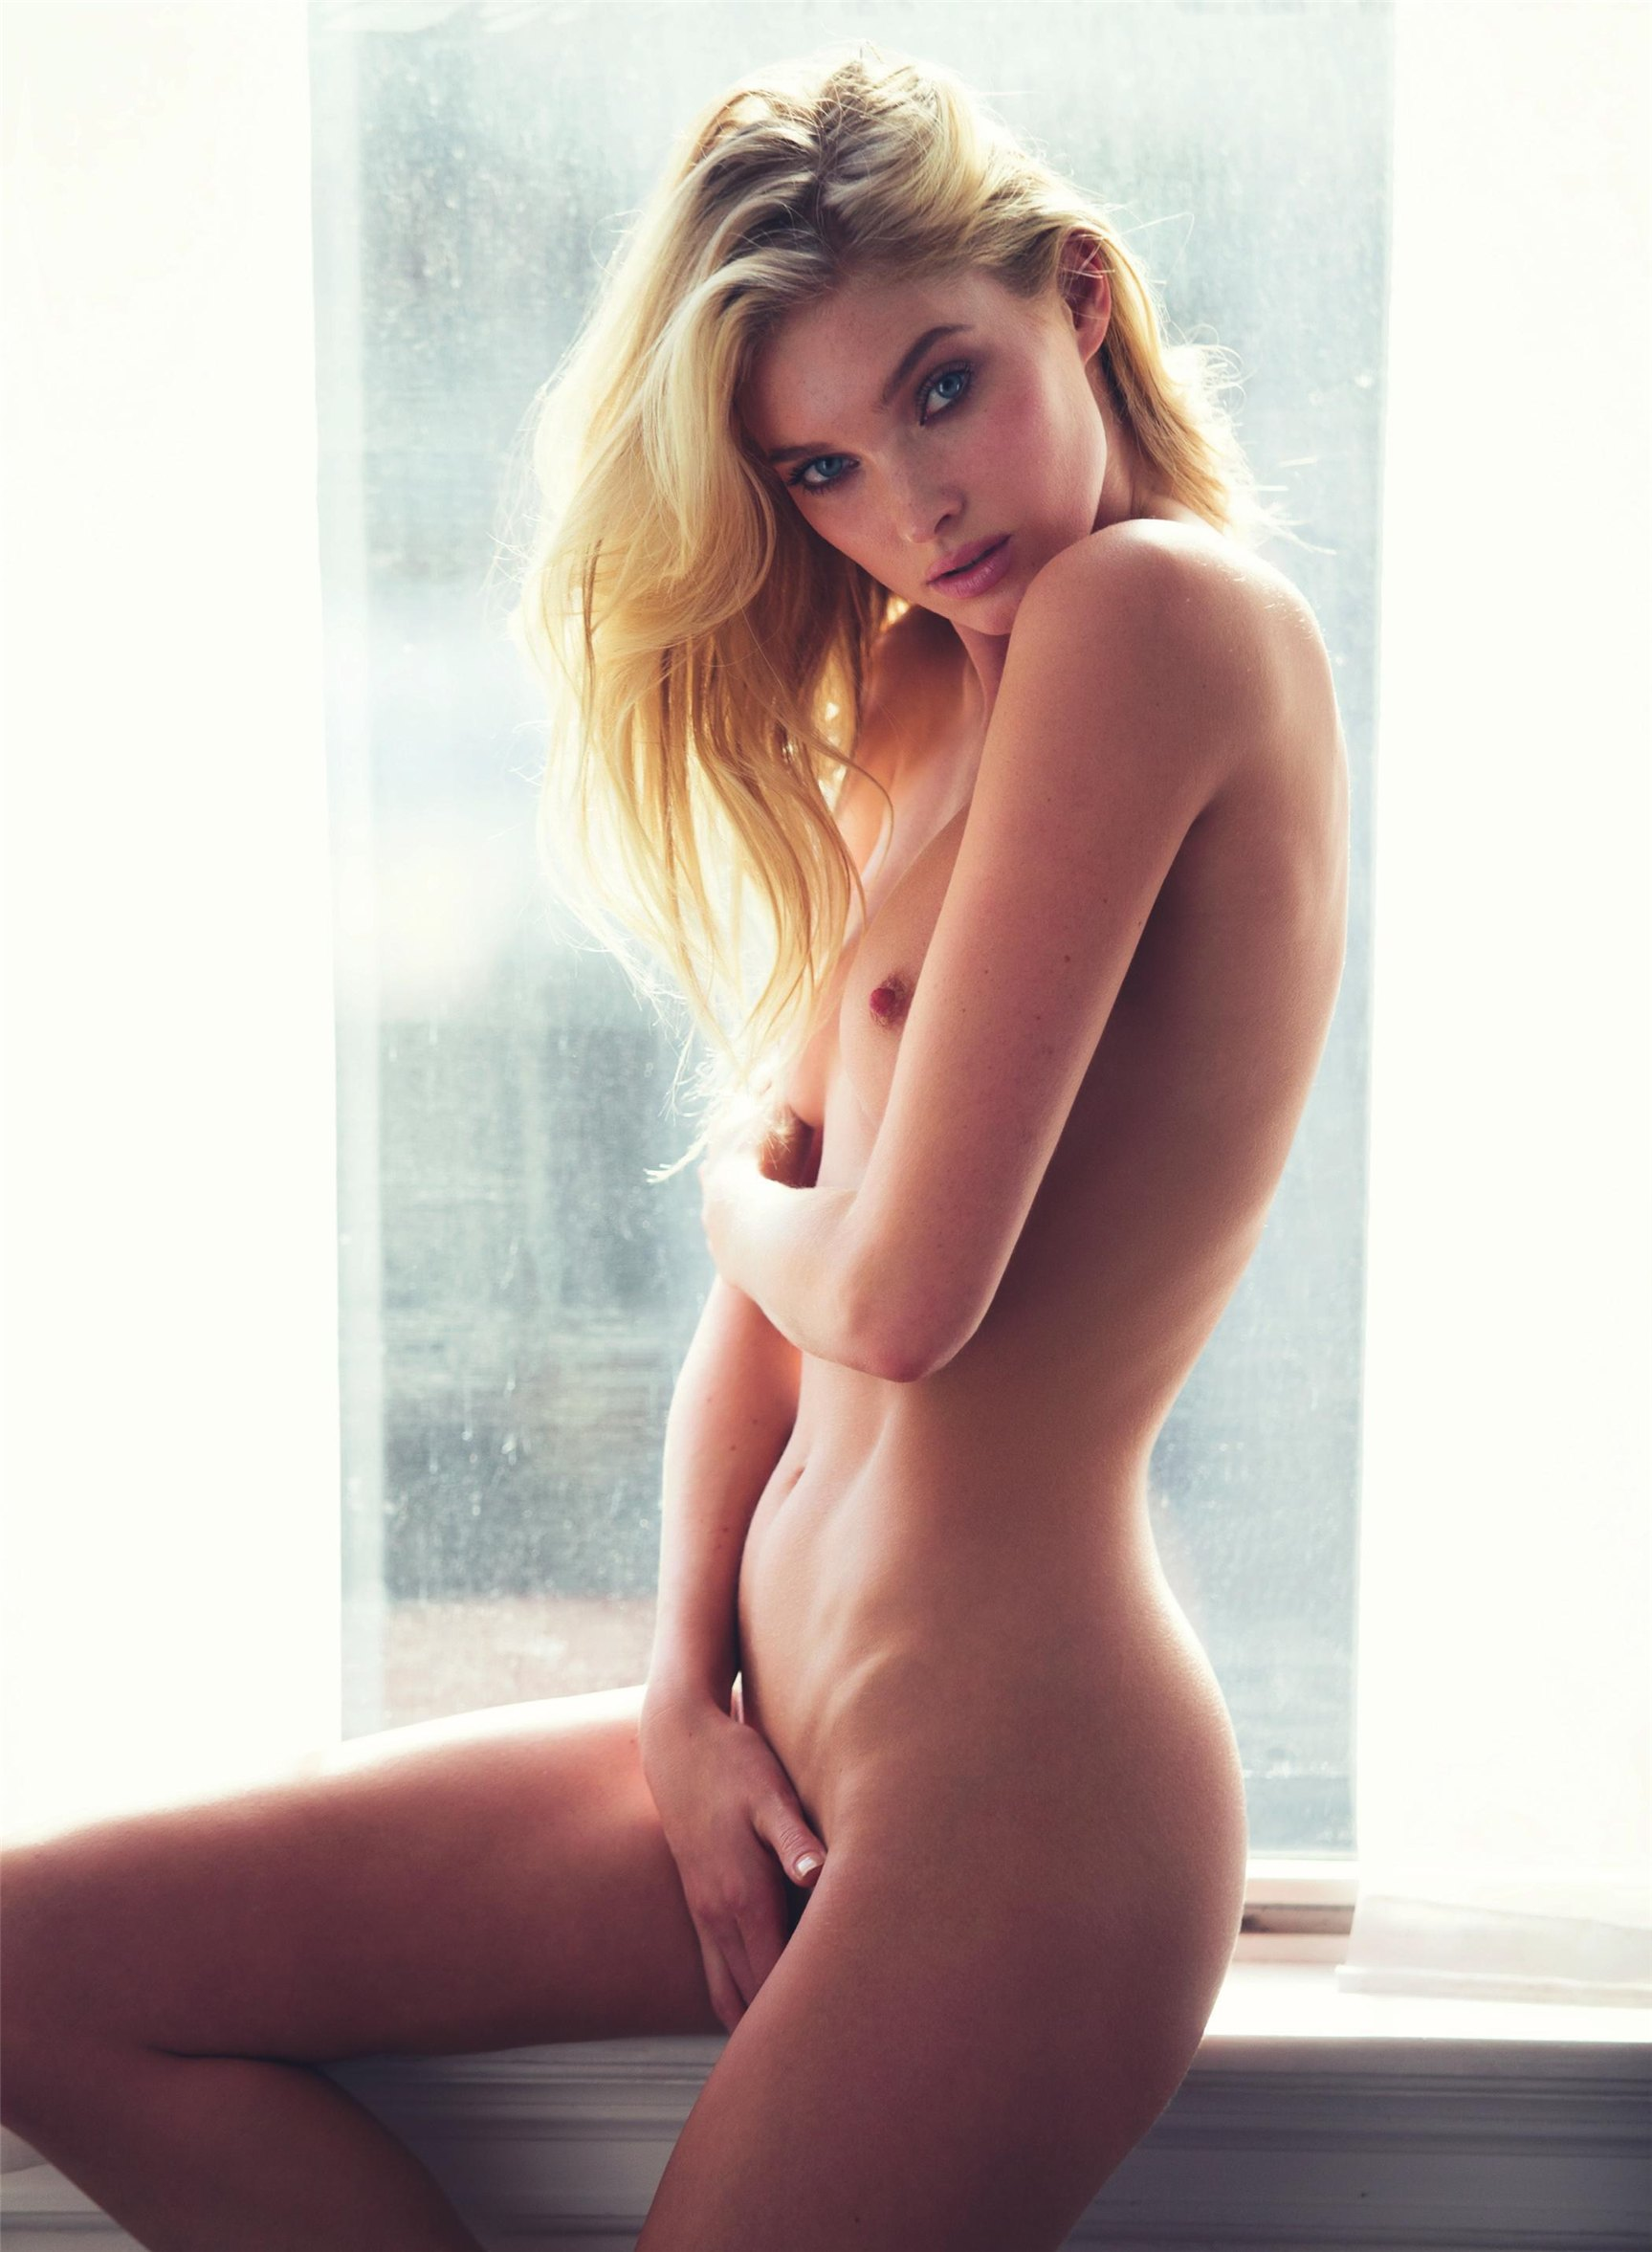 Эльза Хоск / Elsa Hosk by David Bellemere - Lui december 2016 / january 2017